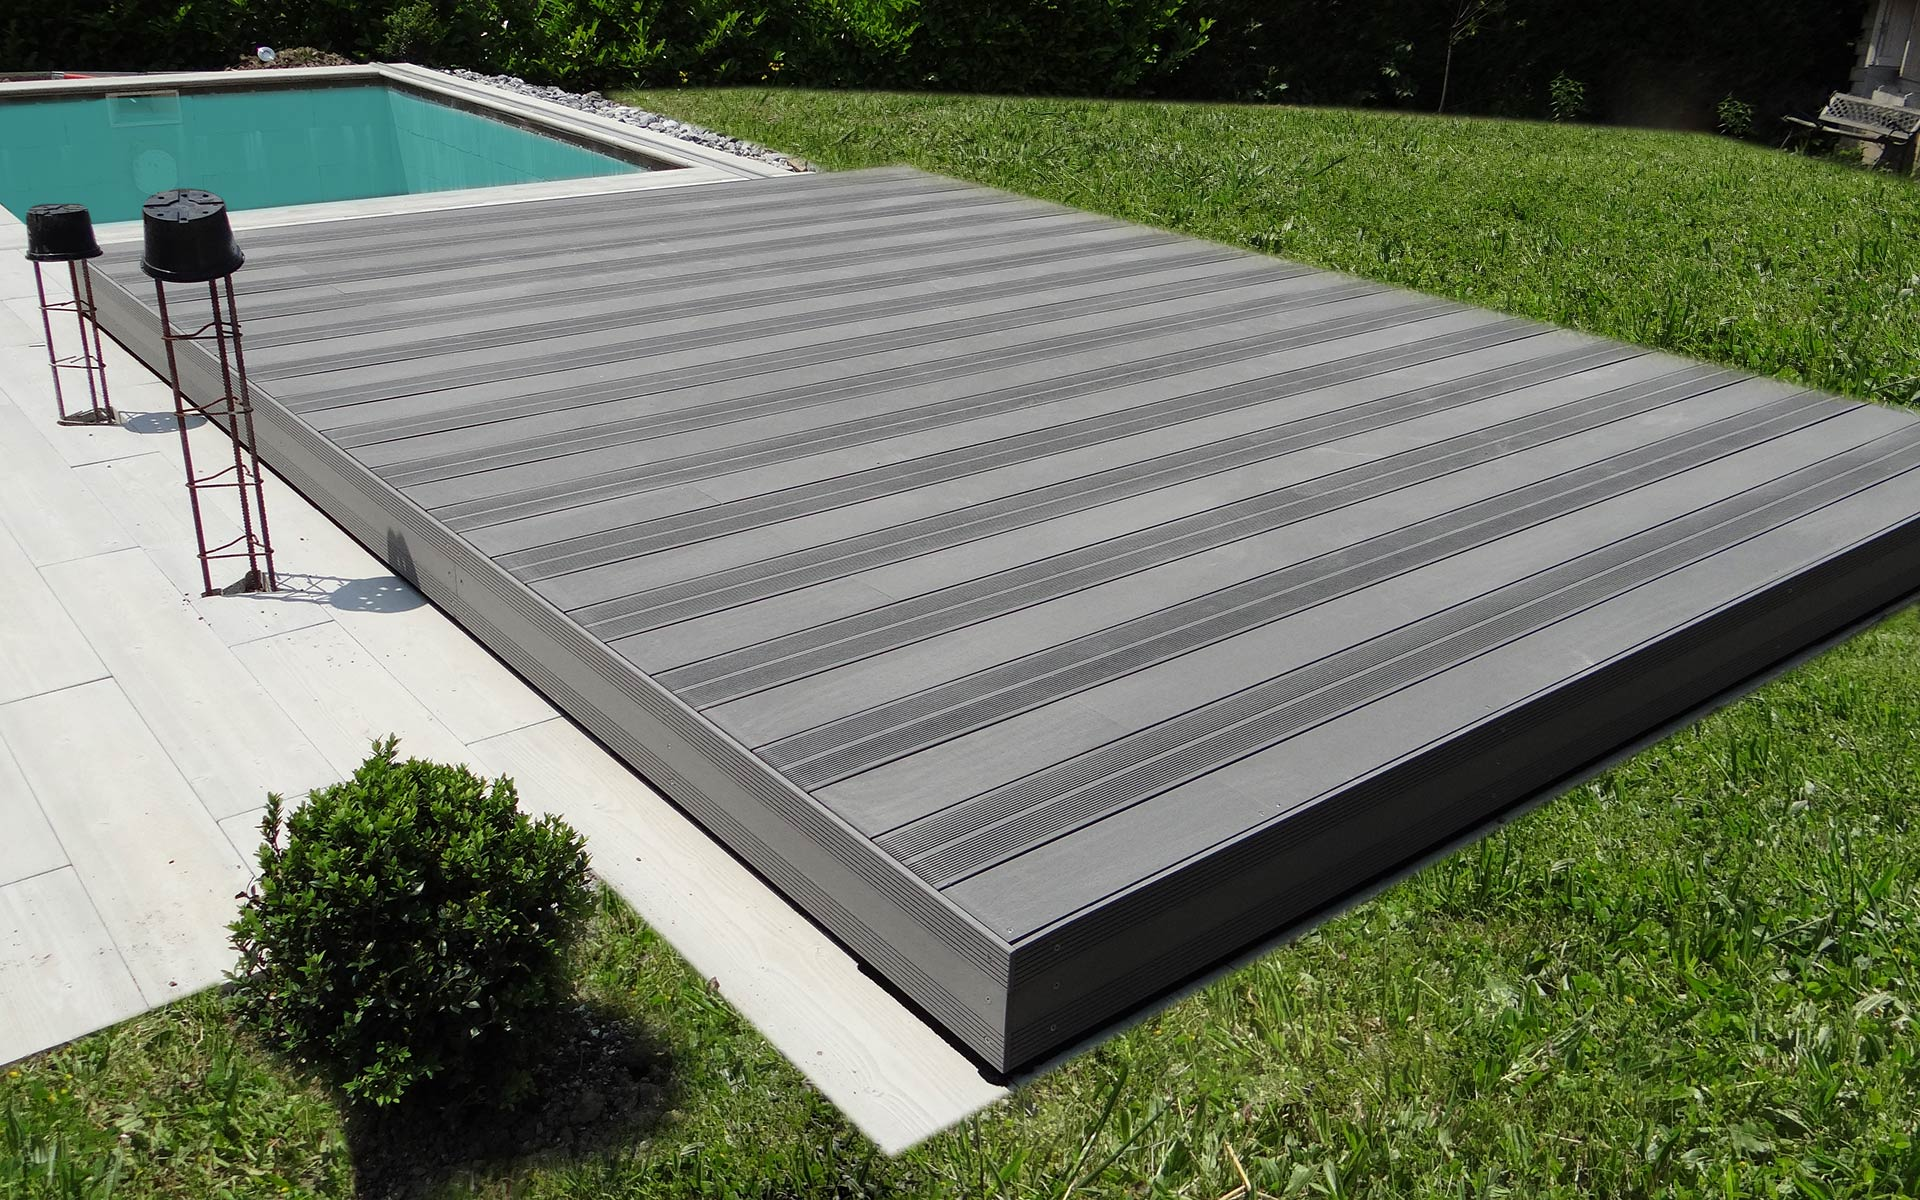 Spa De Nage Exterieur Occasion Terrasse Mobile Pour Piscine - Hidden Pool - Fond Mobile